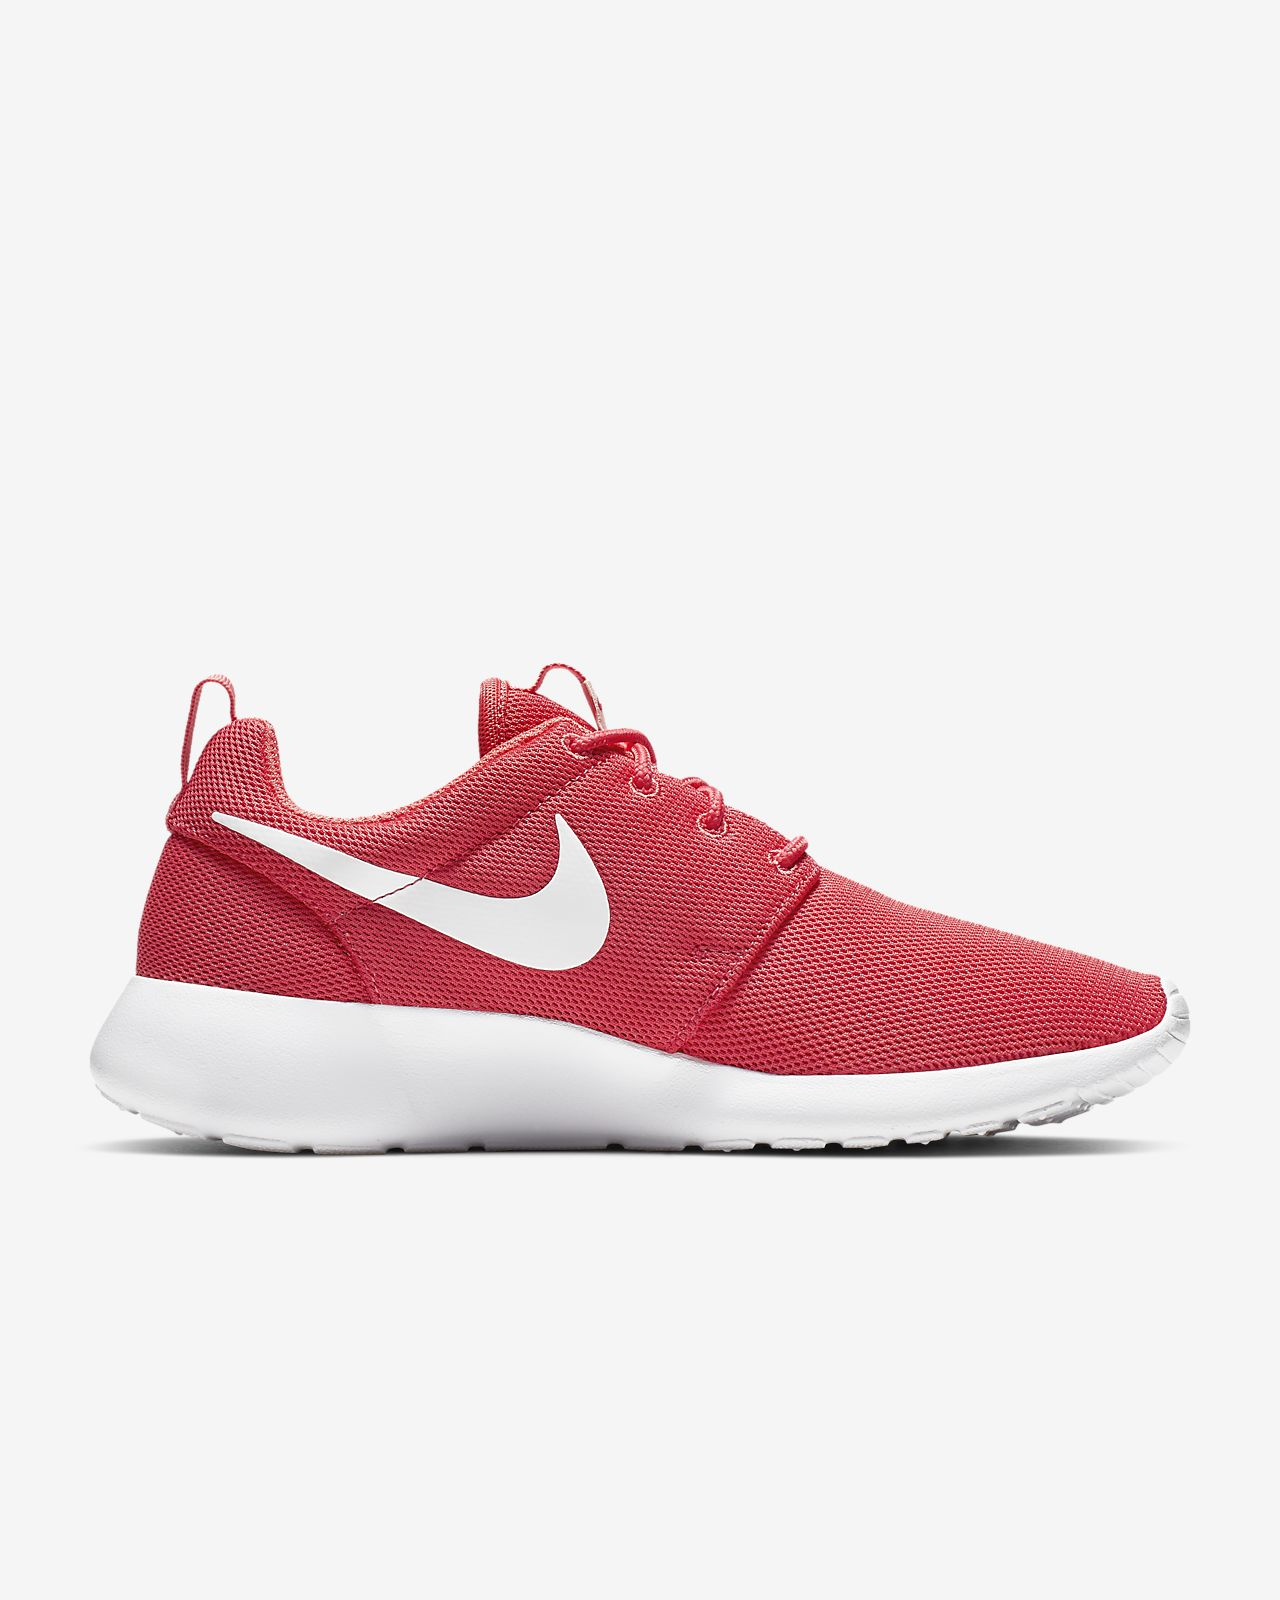 premium selection 33c52 d8032 ... Nike Roshe One Women s Shoe